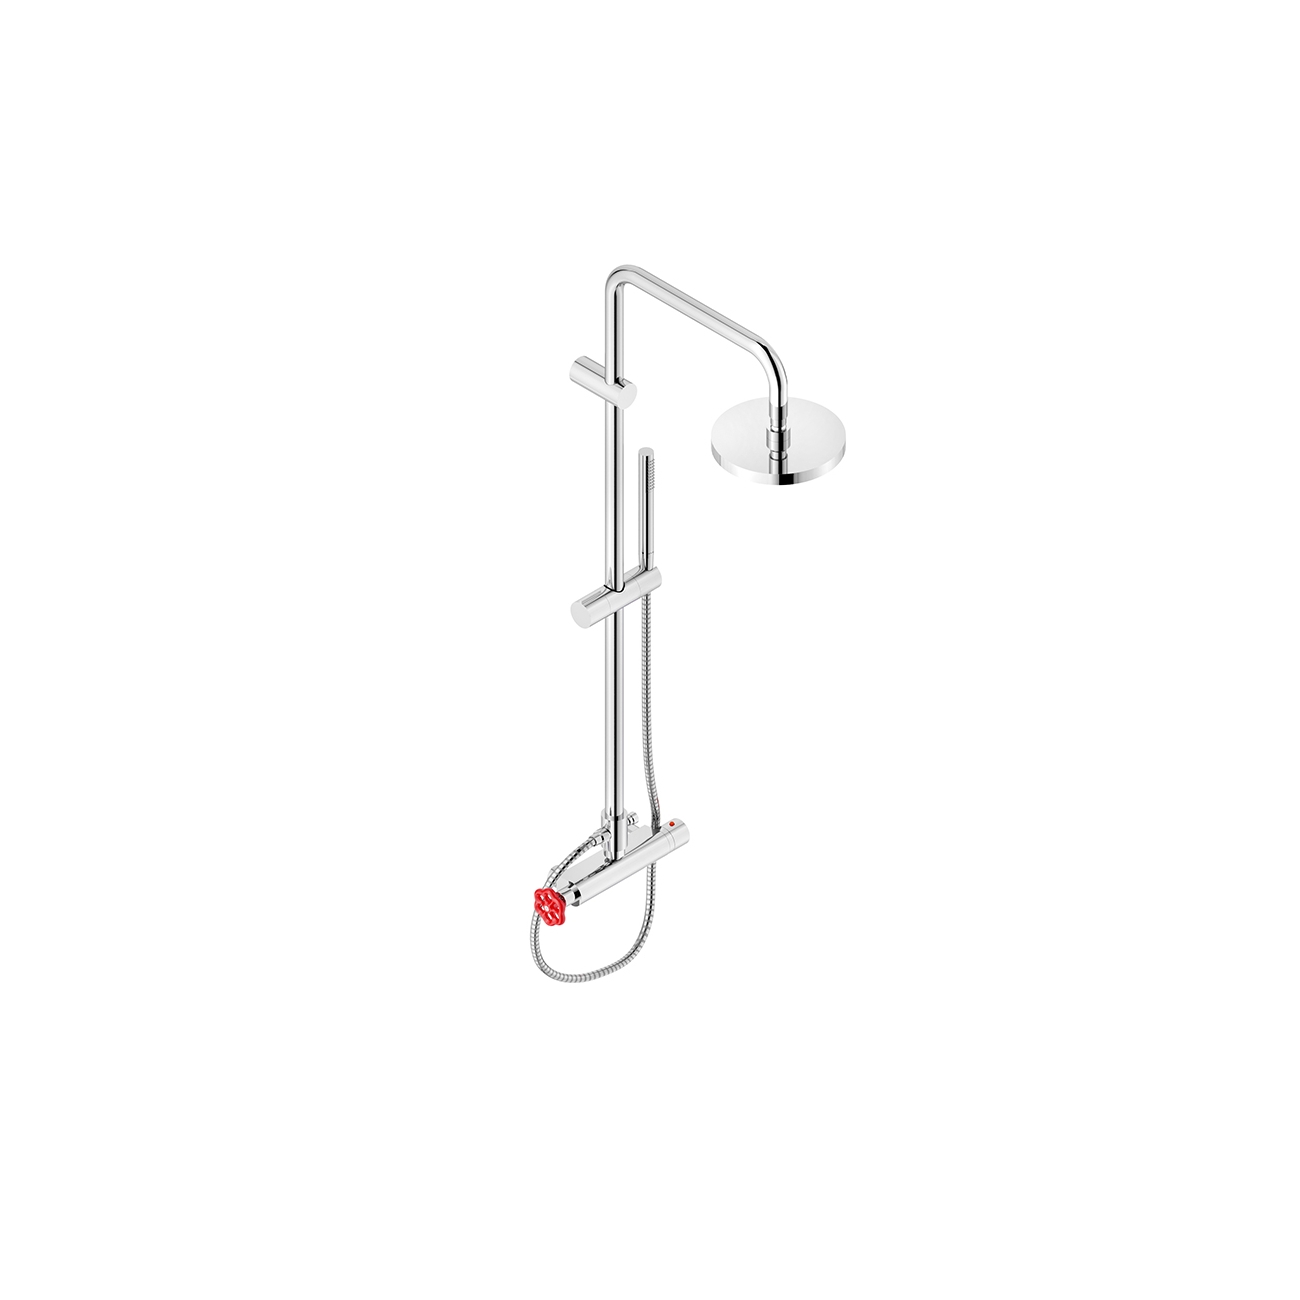 NEVE VOLARE WALL-MOUNTED THERMOSTATIC  SHOWER